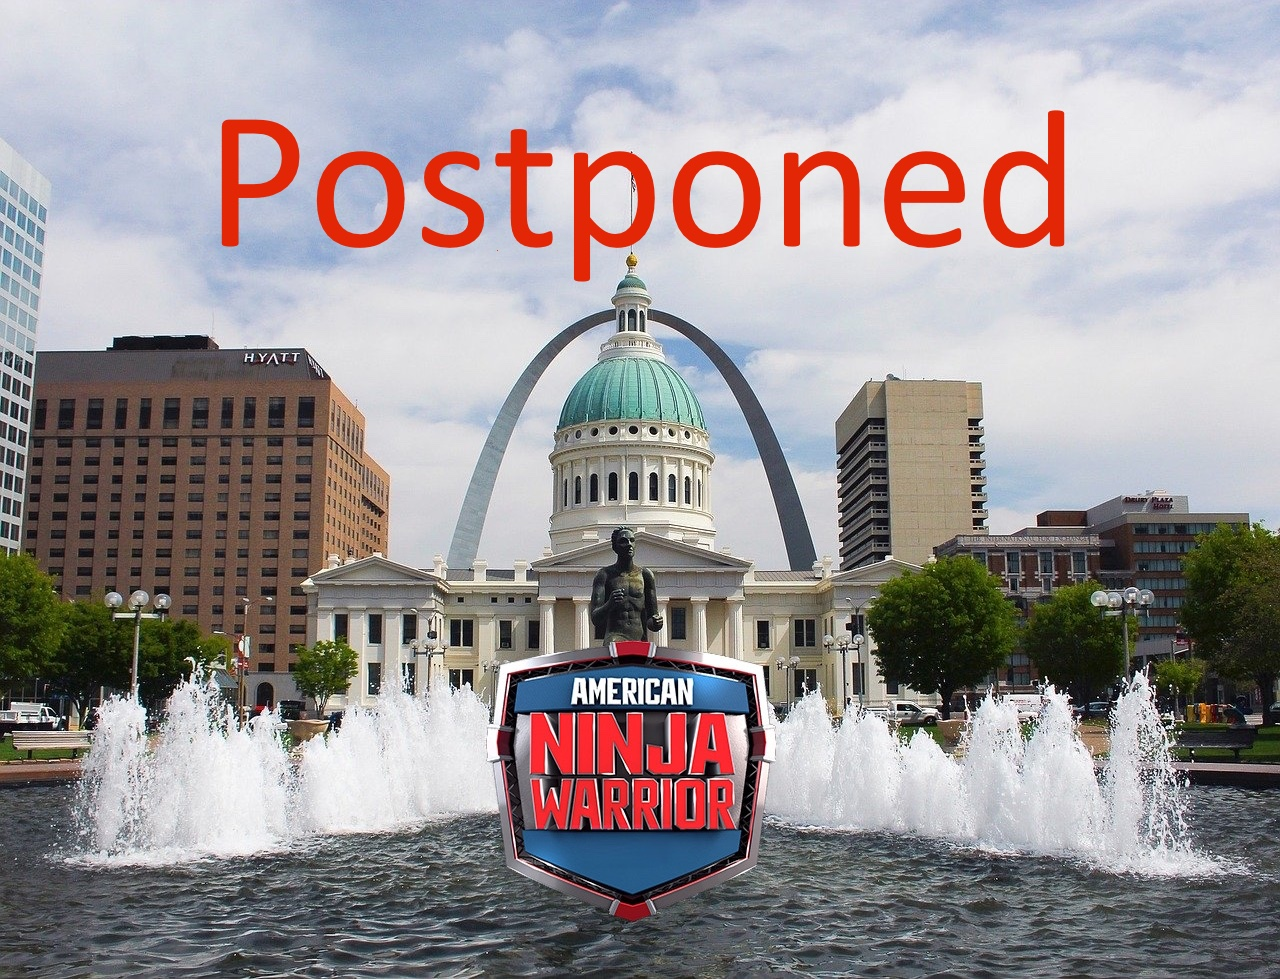 All tapings dates for American Ninja Warrior Season 12 postponed